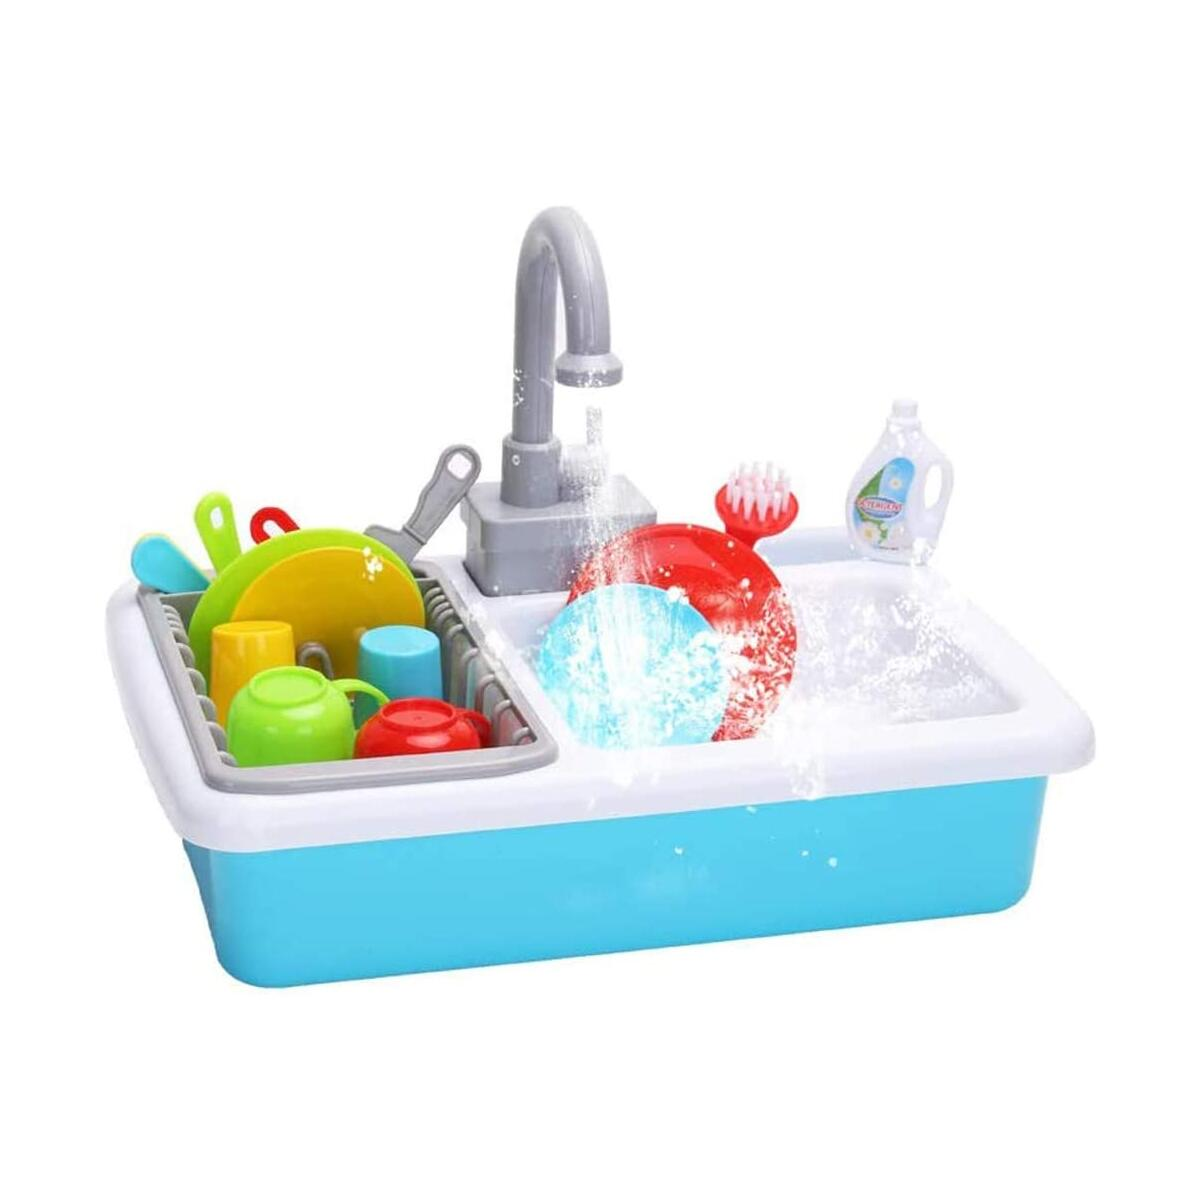 HANMUN Toy Kitchen Set Play Kitchen Toy Utensils Play Dishes Accessories Plates Dishwasher Playing Toy with Running Water, Play House Pretend Role Play Toys for Boys Girls